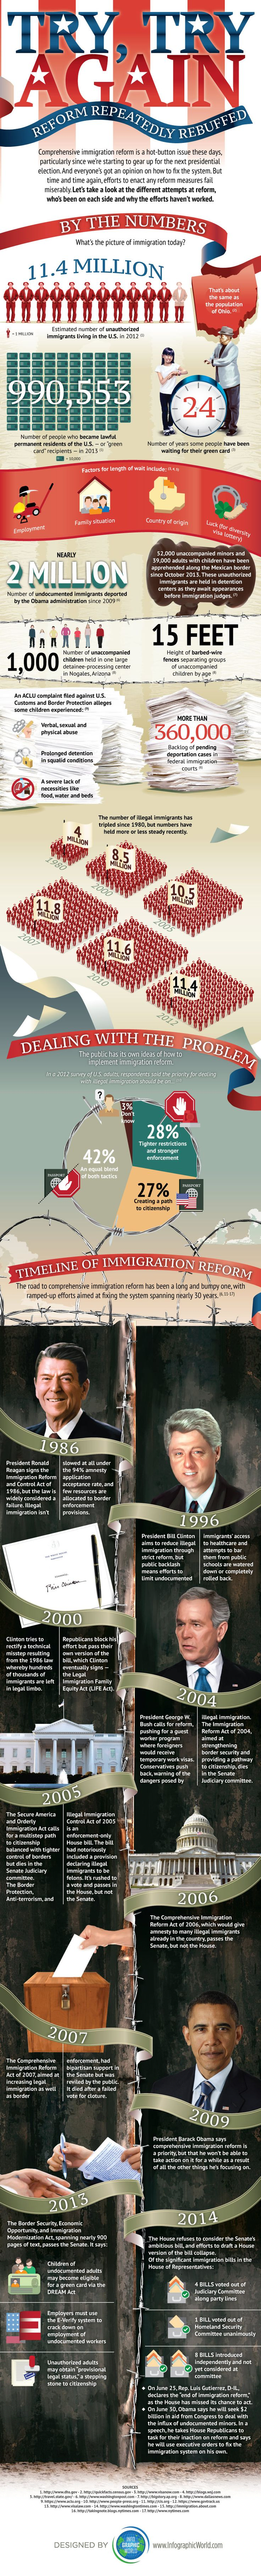 best images about immigration chicano time useful infographic on immigration reform larry ferlazzo s websites of the day